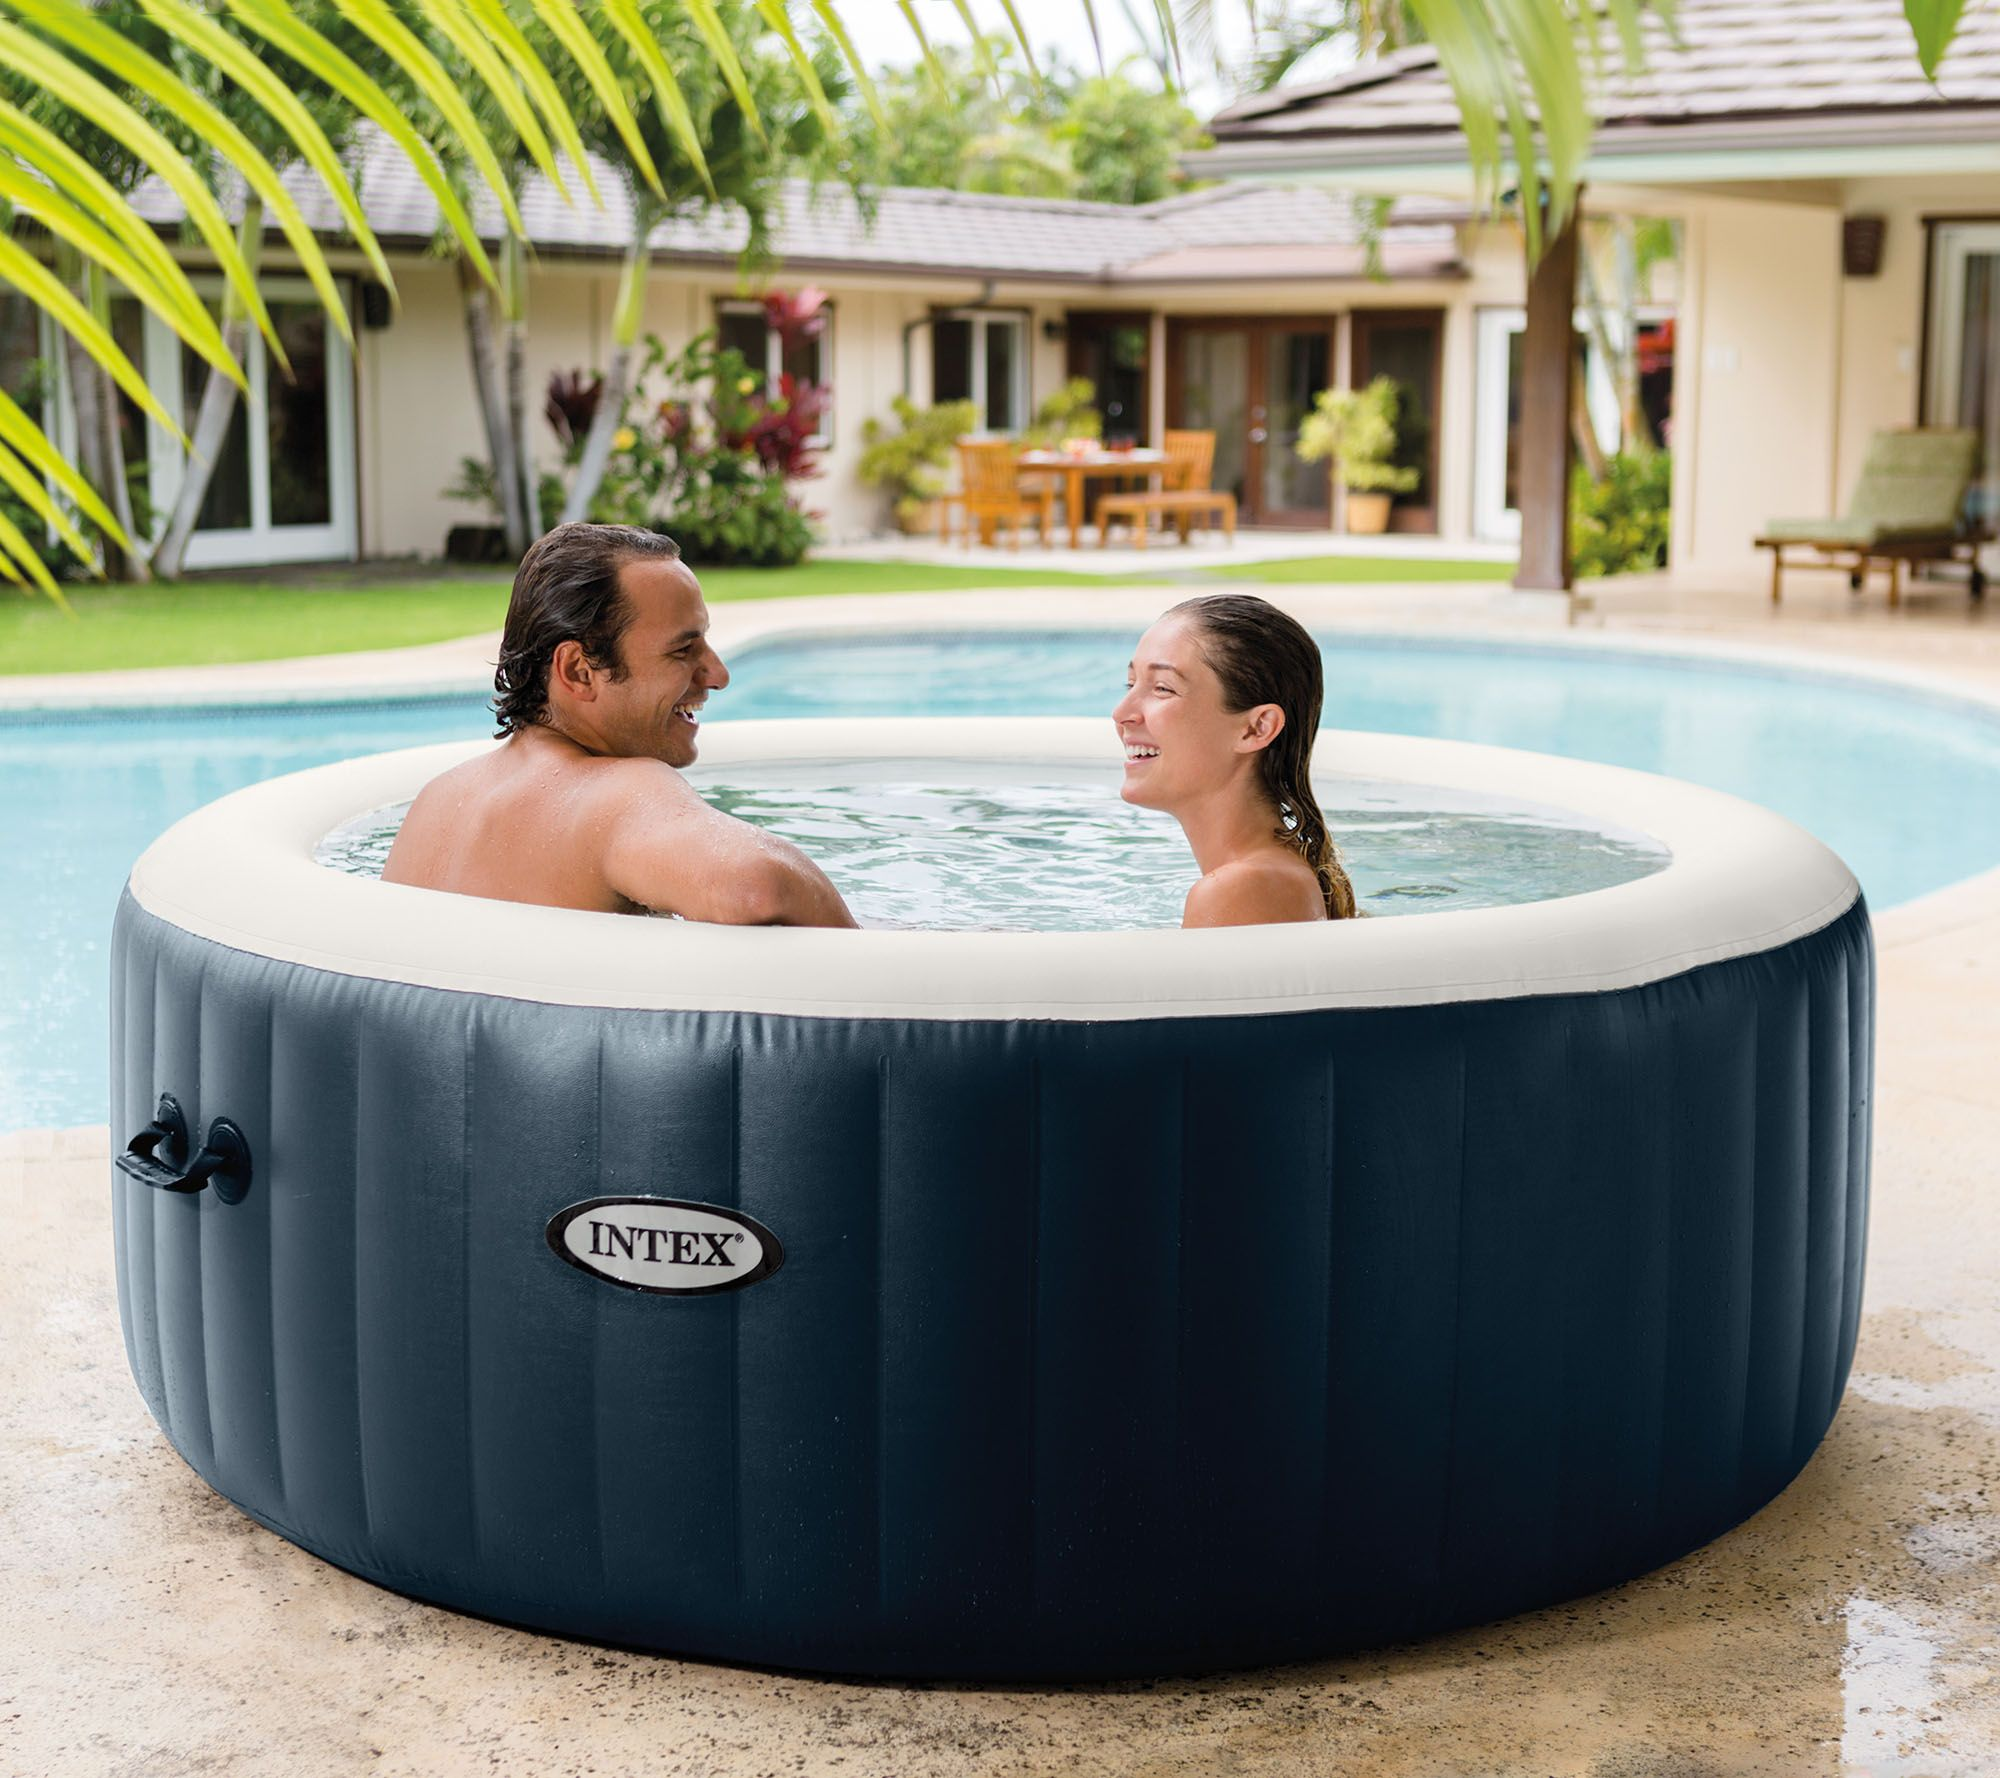 tubs spa hamilton tub person company hot portable canadian kh for sale jet